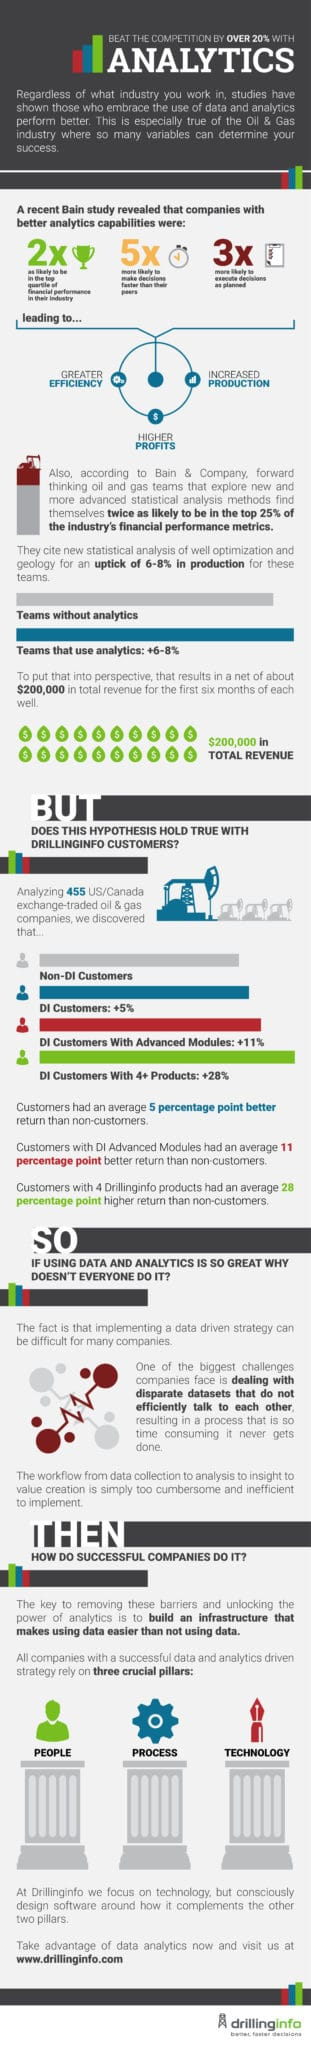 Implement Analytics to be Top Tier E&P Company